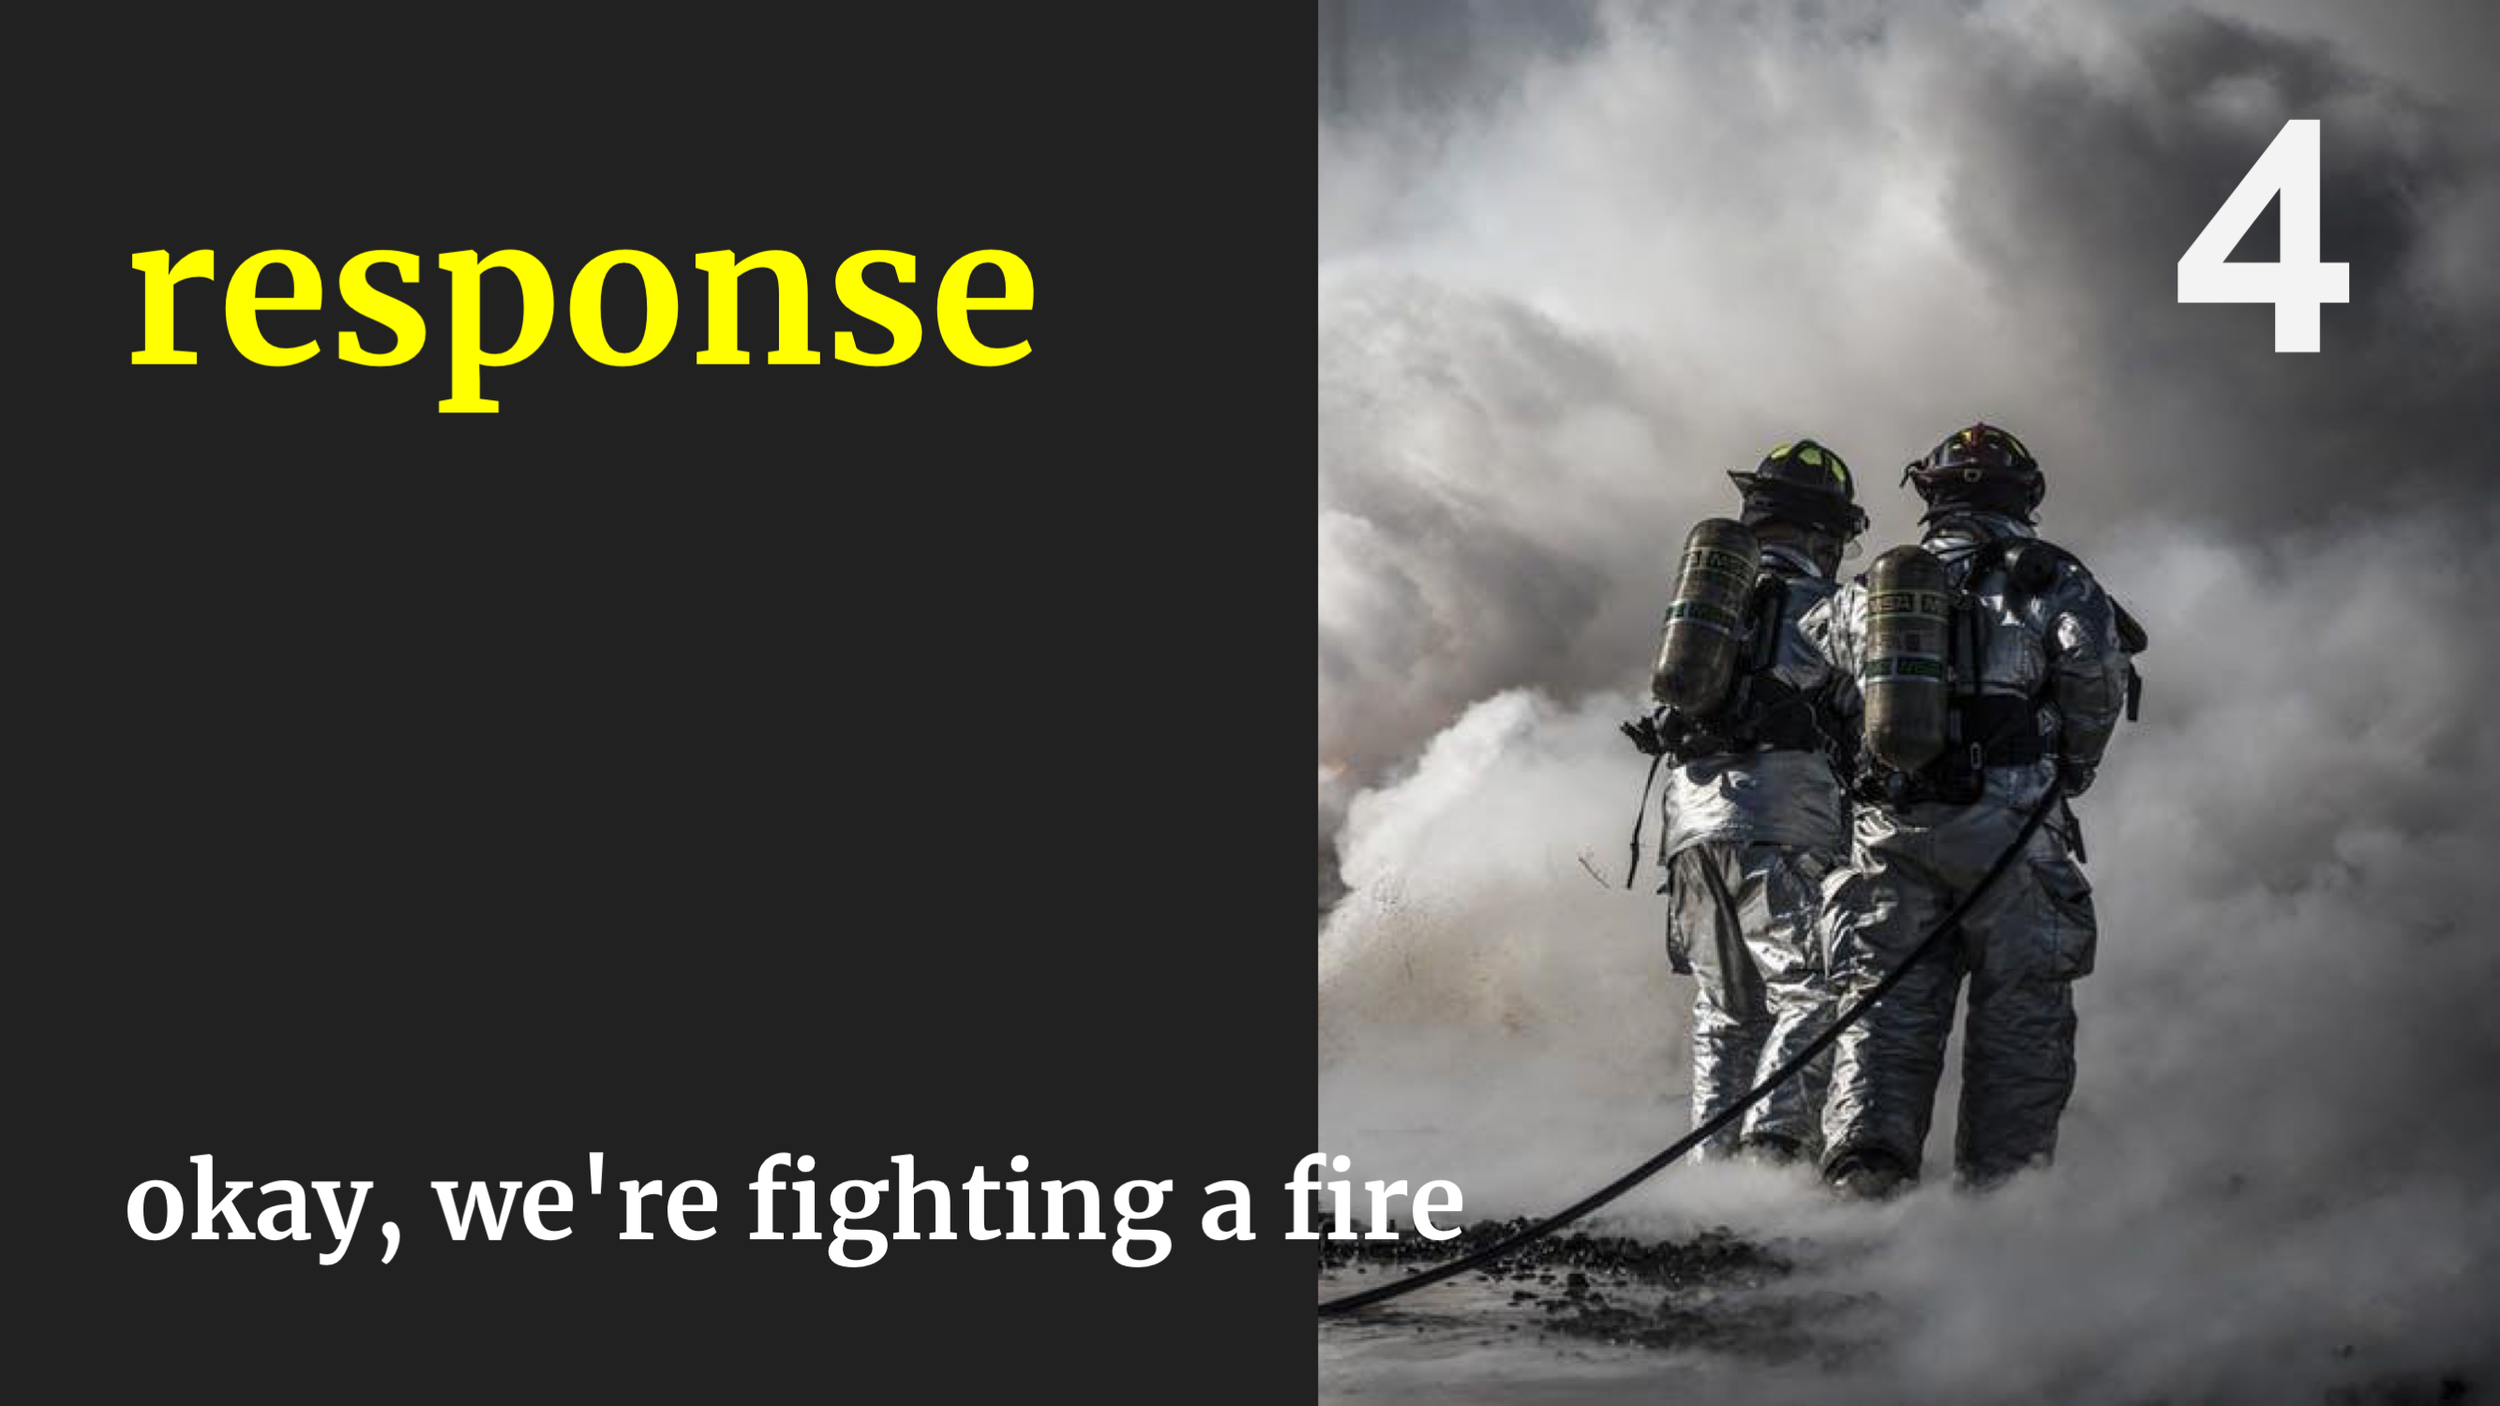 And sometimes we will still get to stage 4, fighting a massive outage. But we should aim to not get here often. Firefighting is not good for your SLAs and it's also not great for the health of the humans involved.